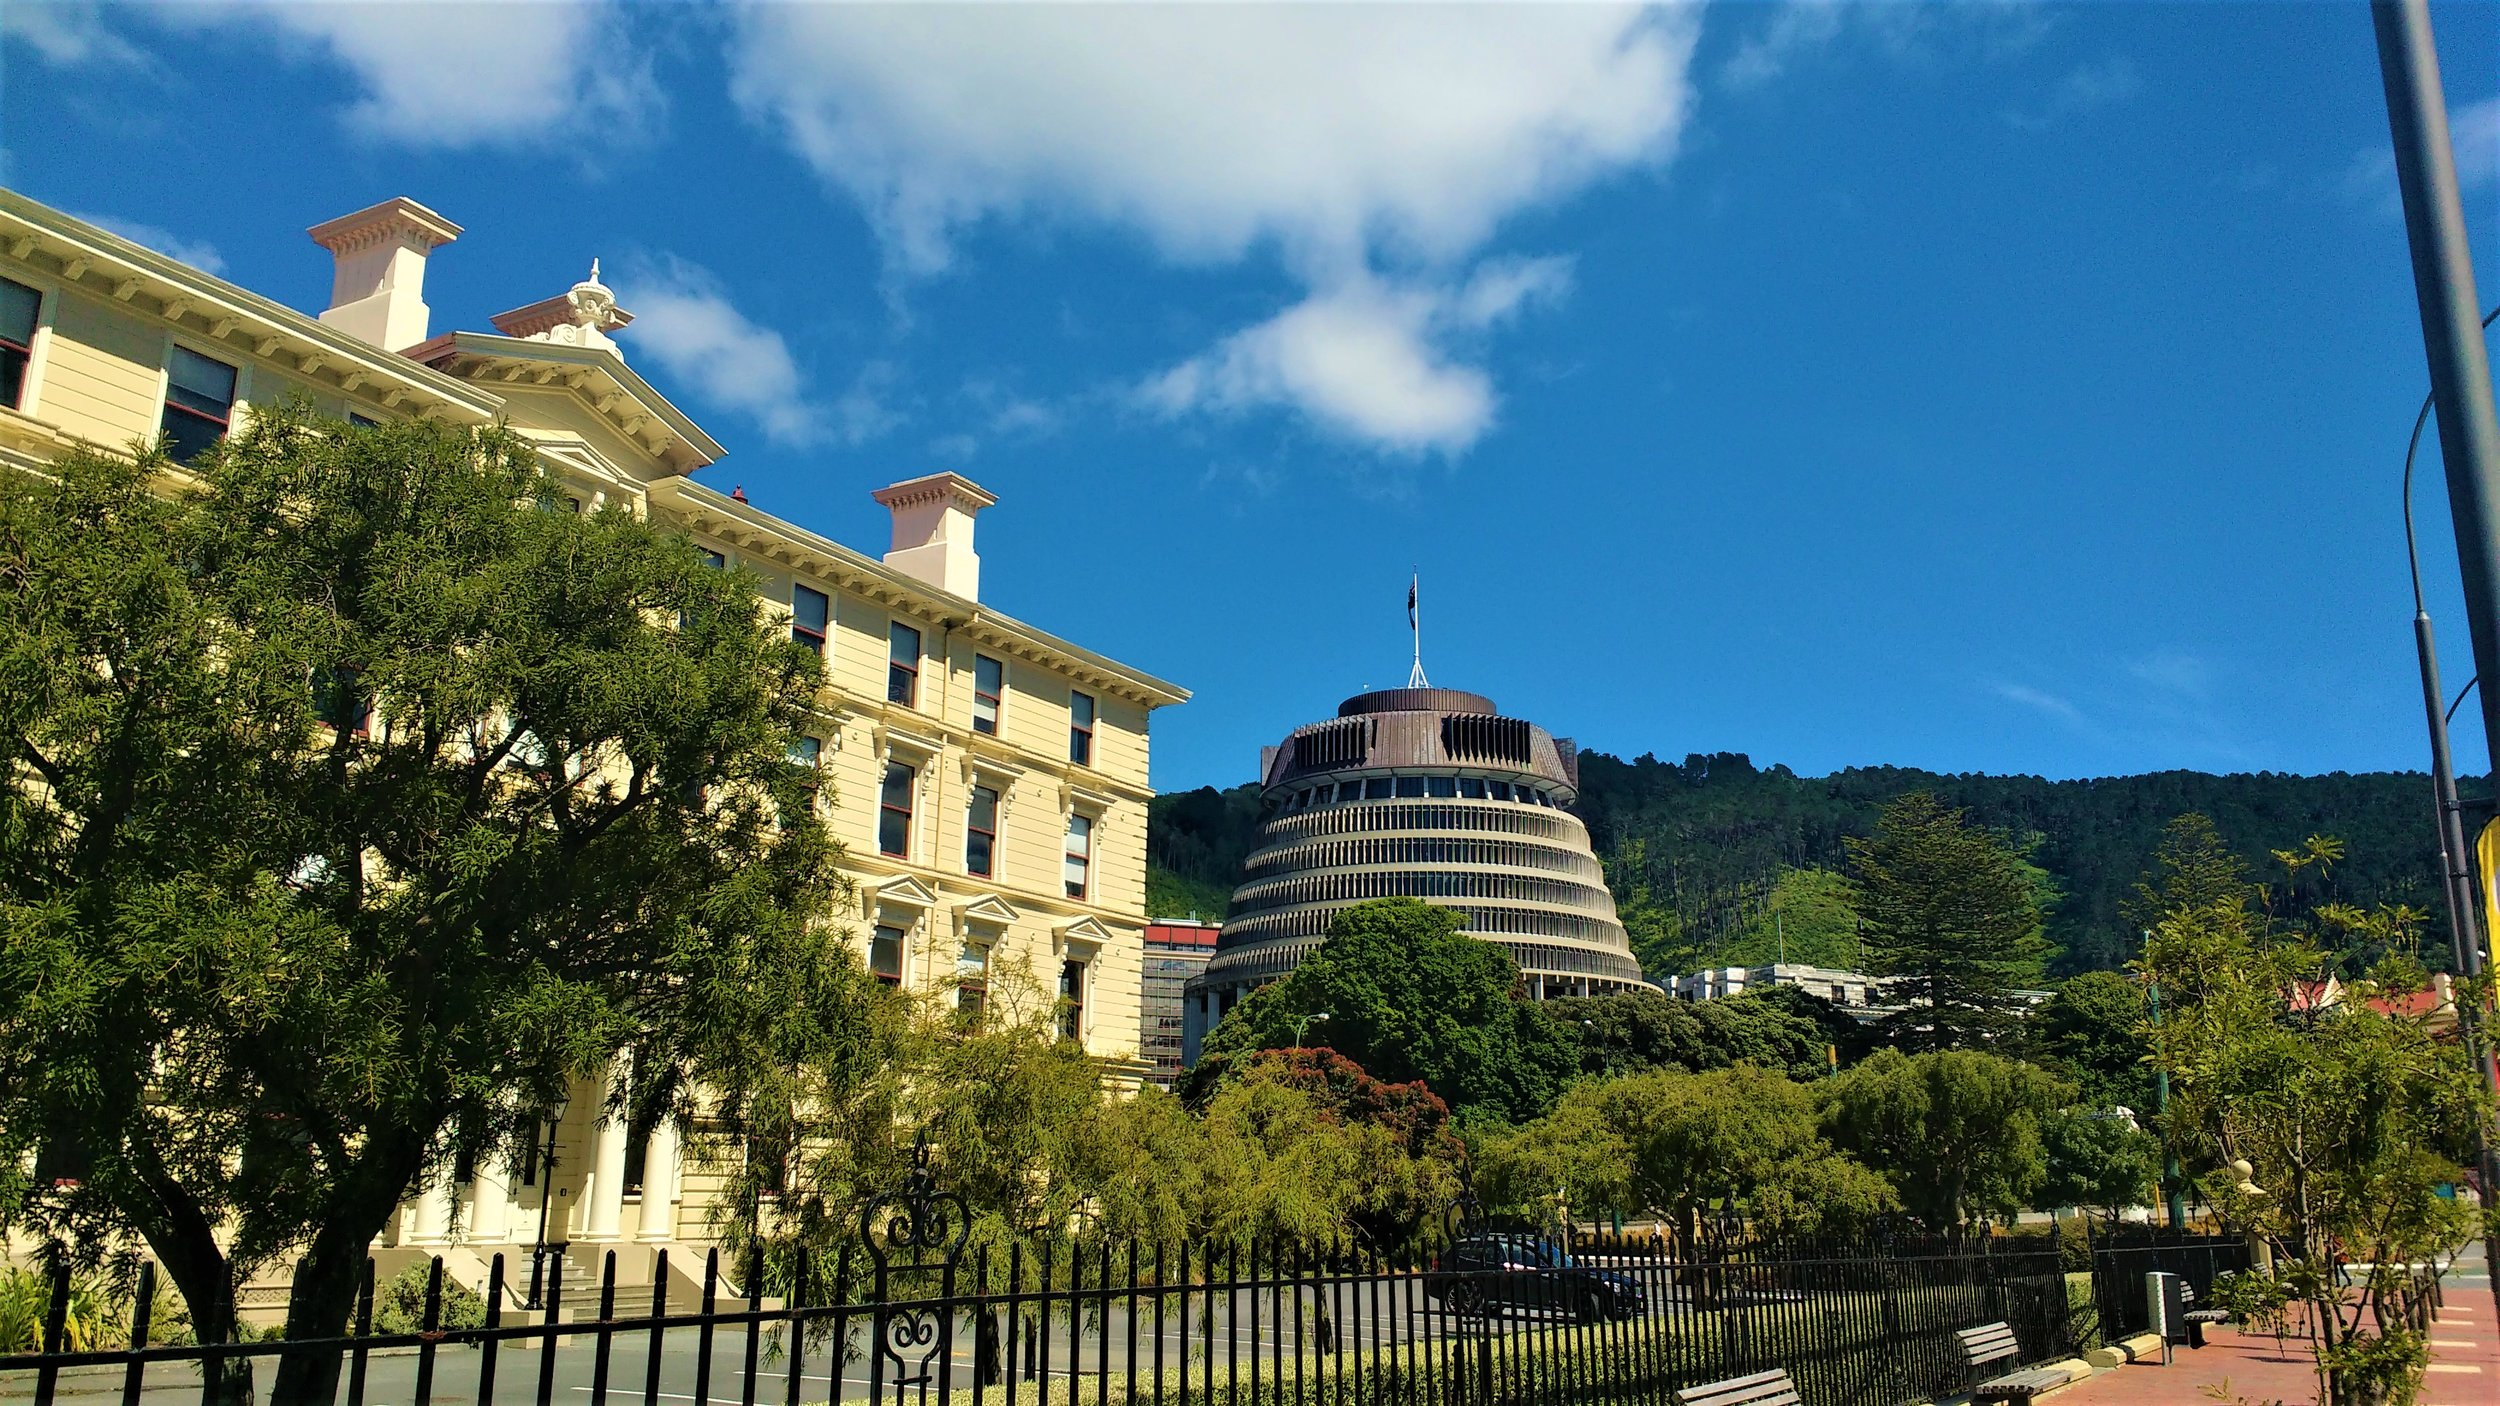 The Parliamentary Buildings and law library in wellington, New Zealand explore these top free things to do in Wellington